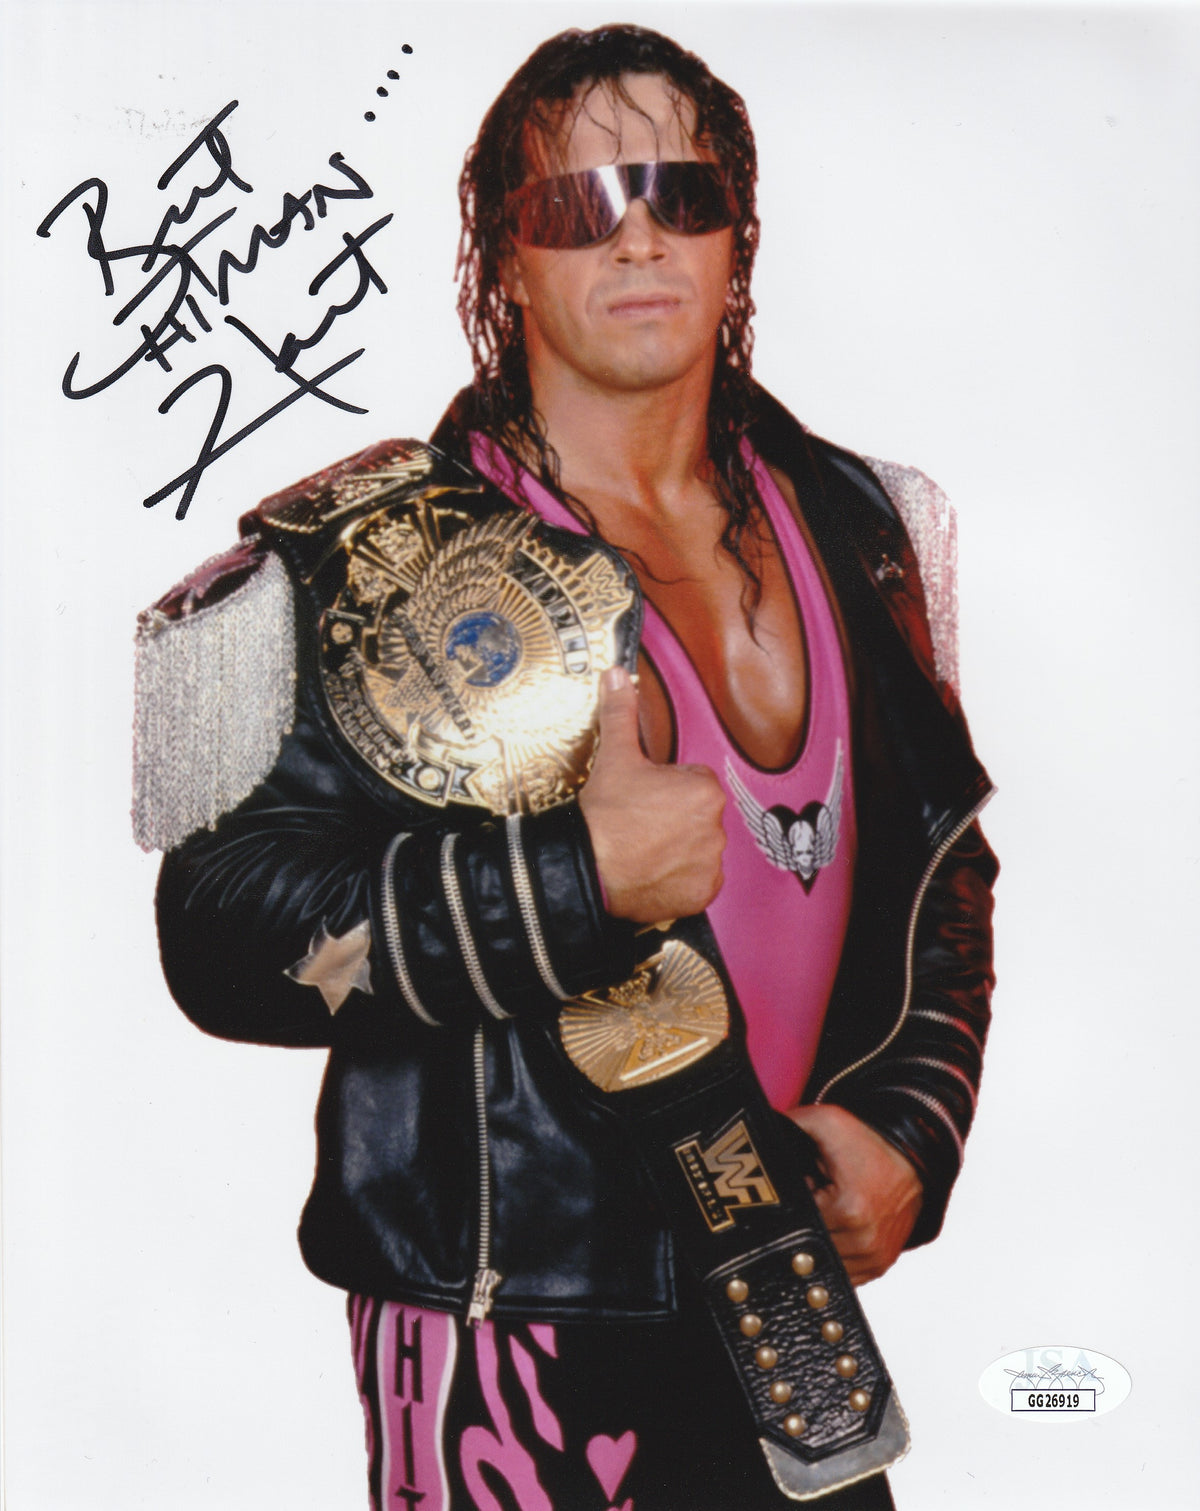 BRET HART #3 WWE FREE DELIVERY Signed Photo A5 Mounted Print